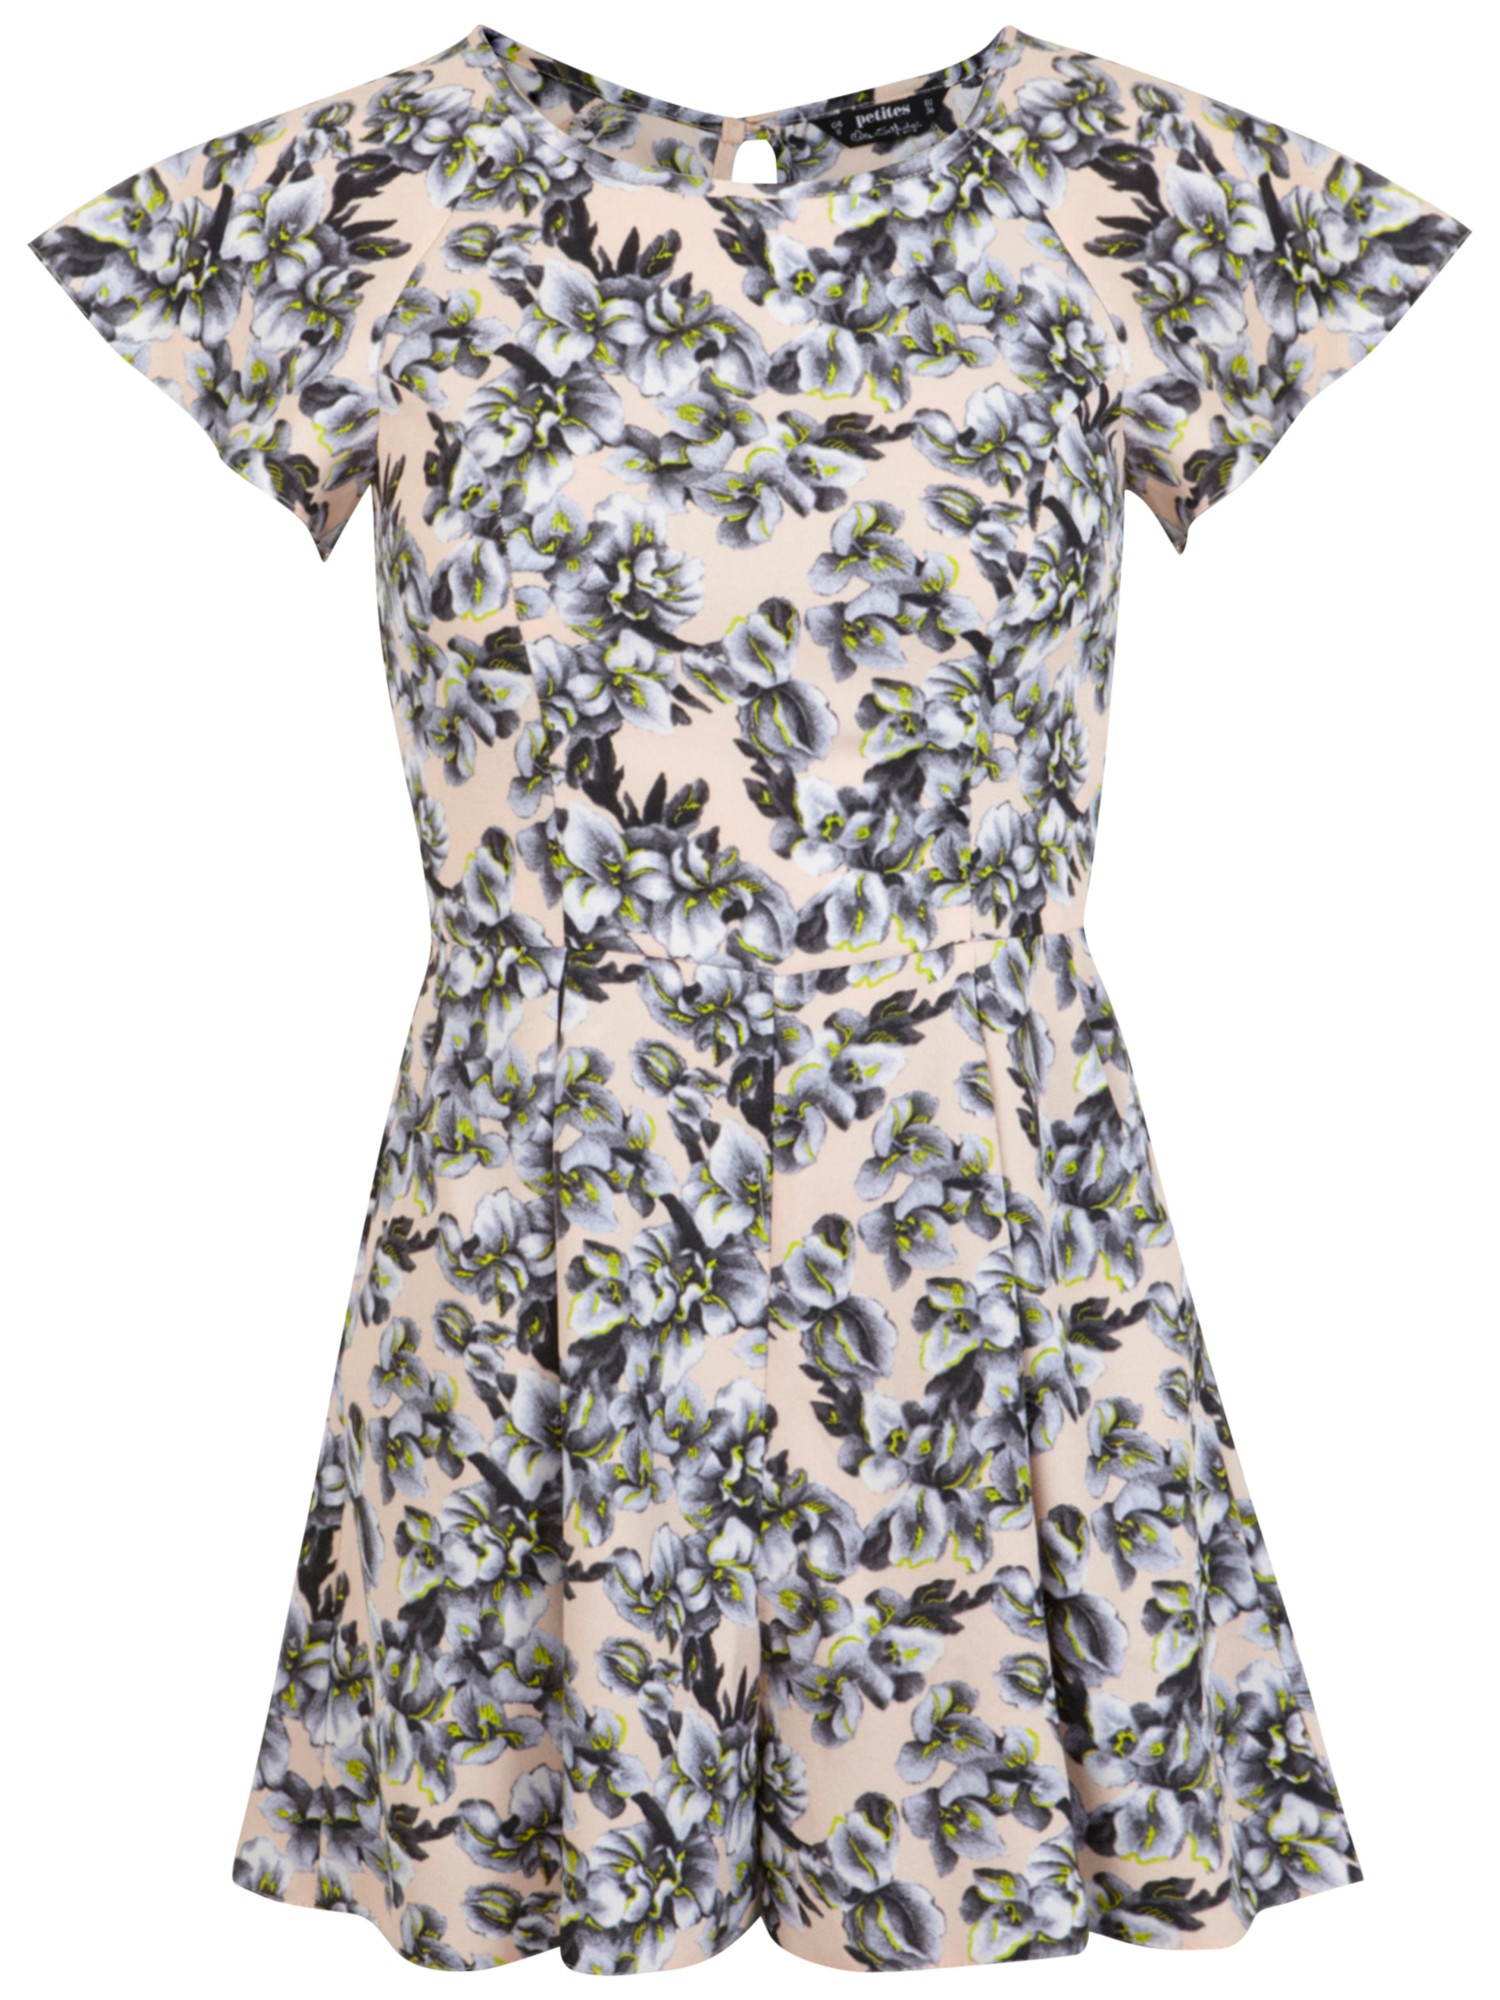 79af8e091bb Miss Selfridge Petite Floral Playsuit - Lyst